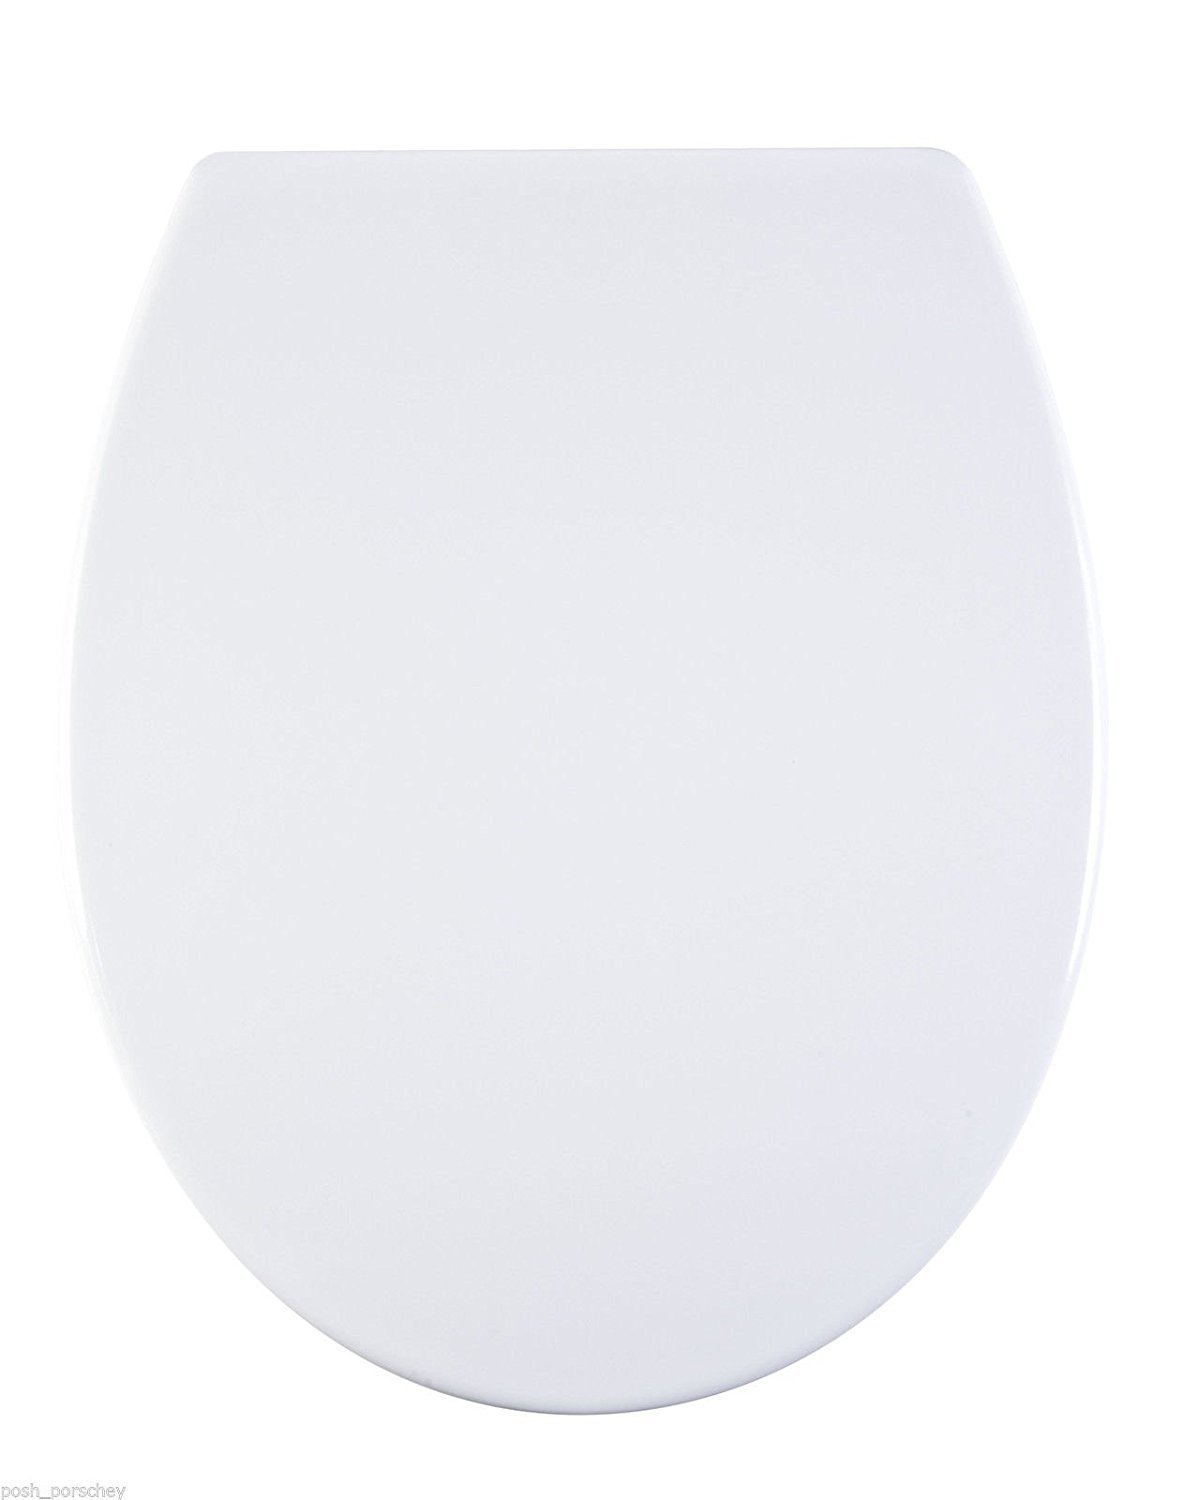 Aqualona Products Thermoplast Toilet Seat, White Aqualona Products Ltd 5011264077542